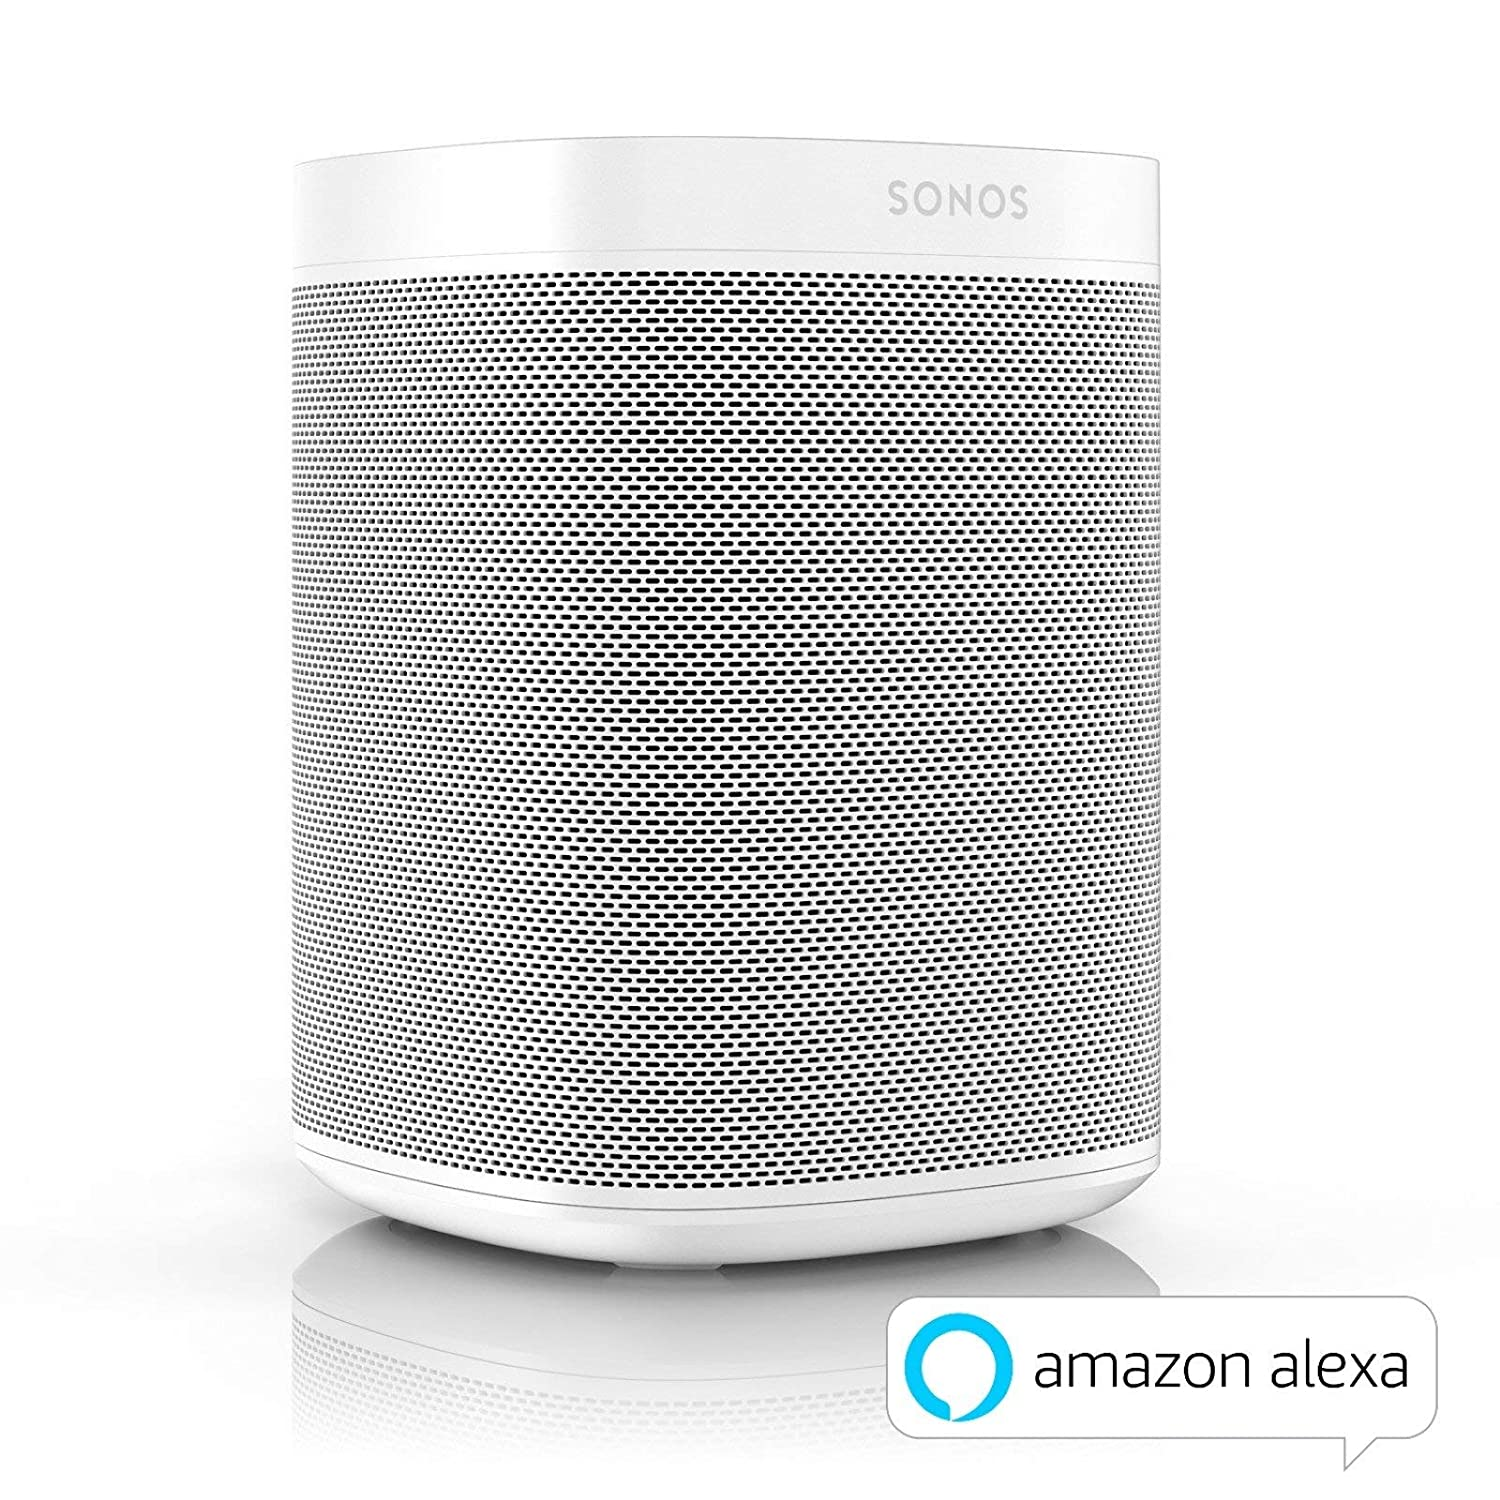 Sonos One, lo Smart Speaker per Ascoltare la Musica in Streaming con Alexa Integrata, Bianco